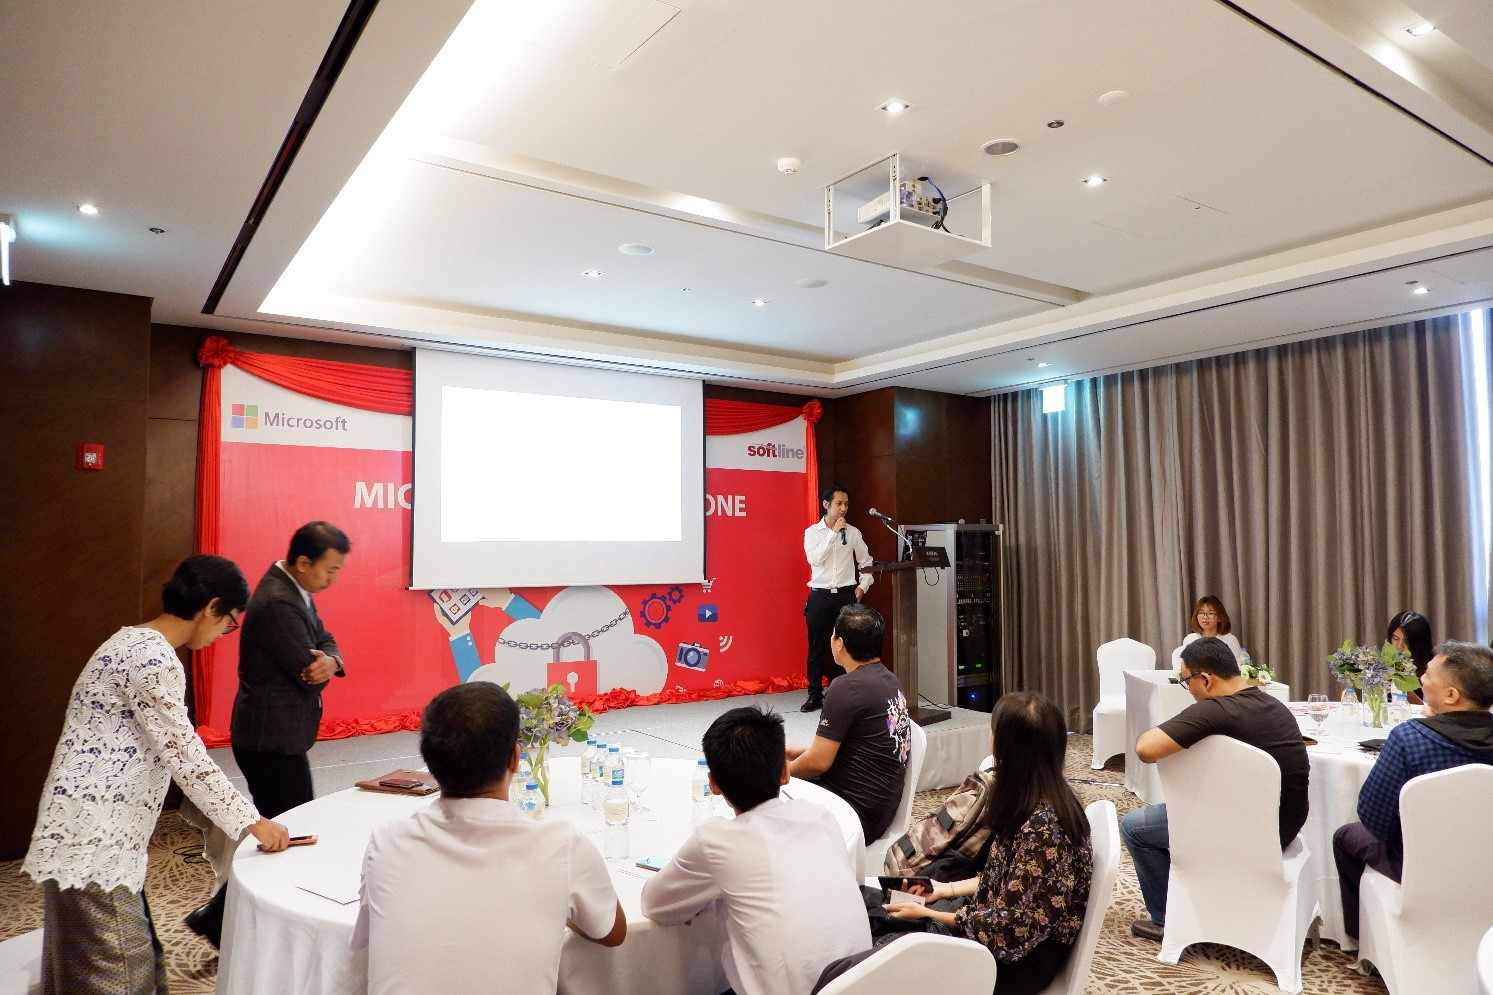 Mr. Thet Htun Aung – Technology Strategist – APAC Partners CTO Office from Microsoft